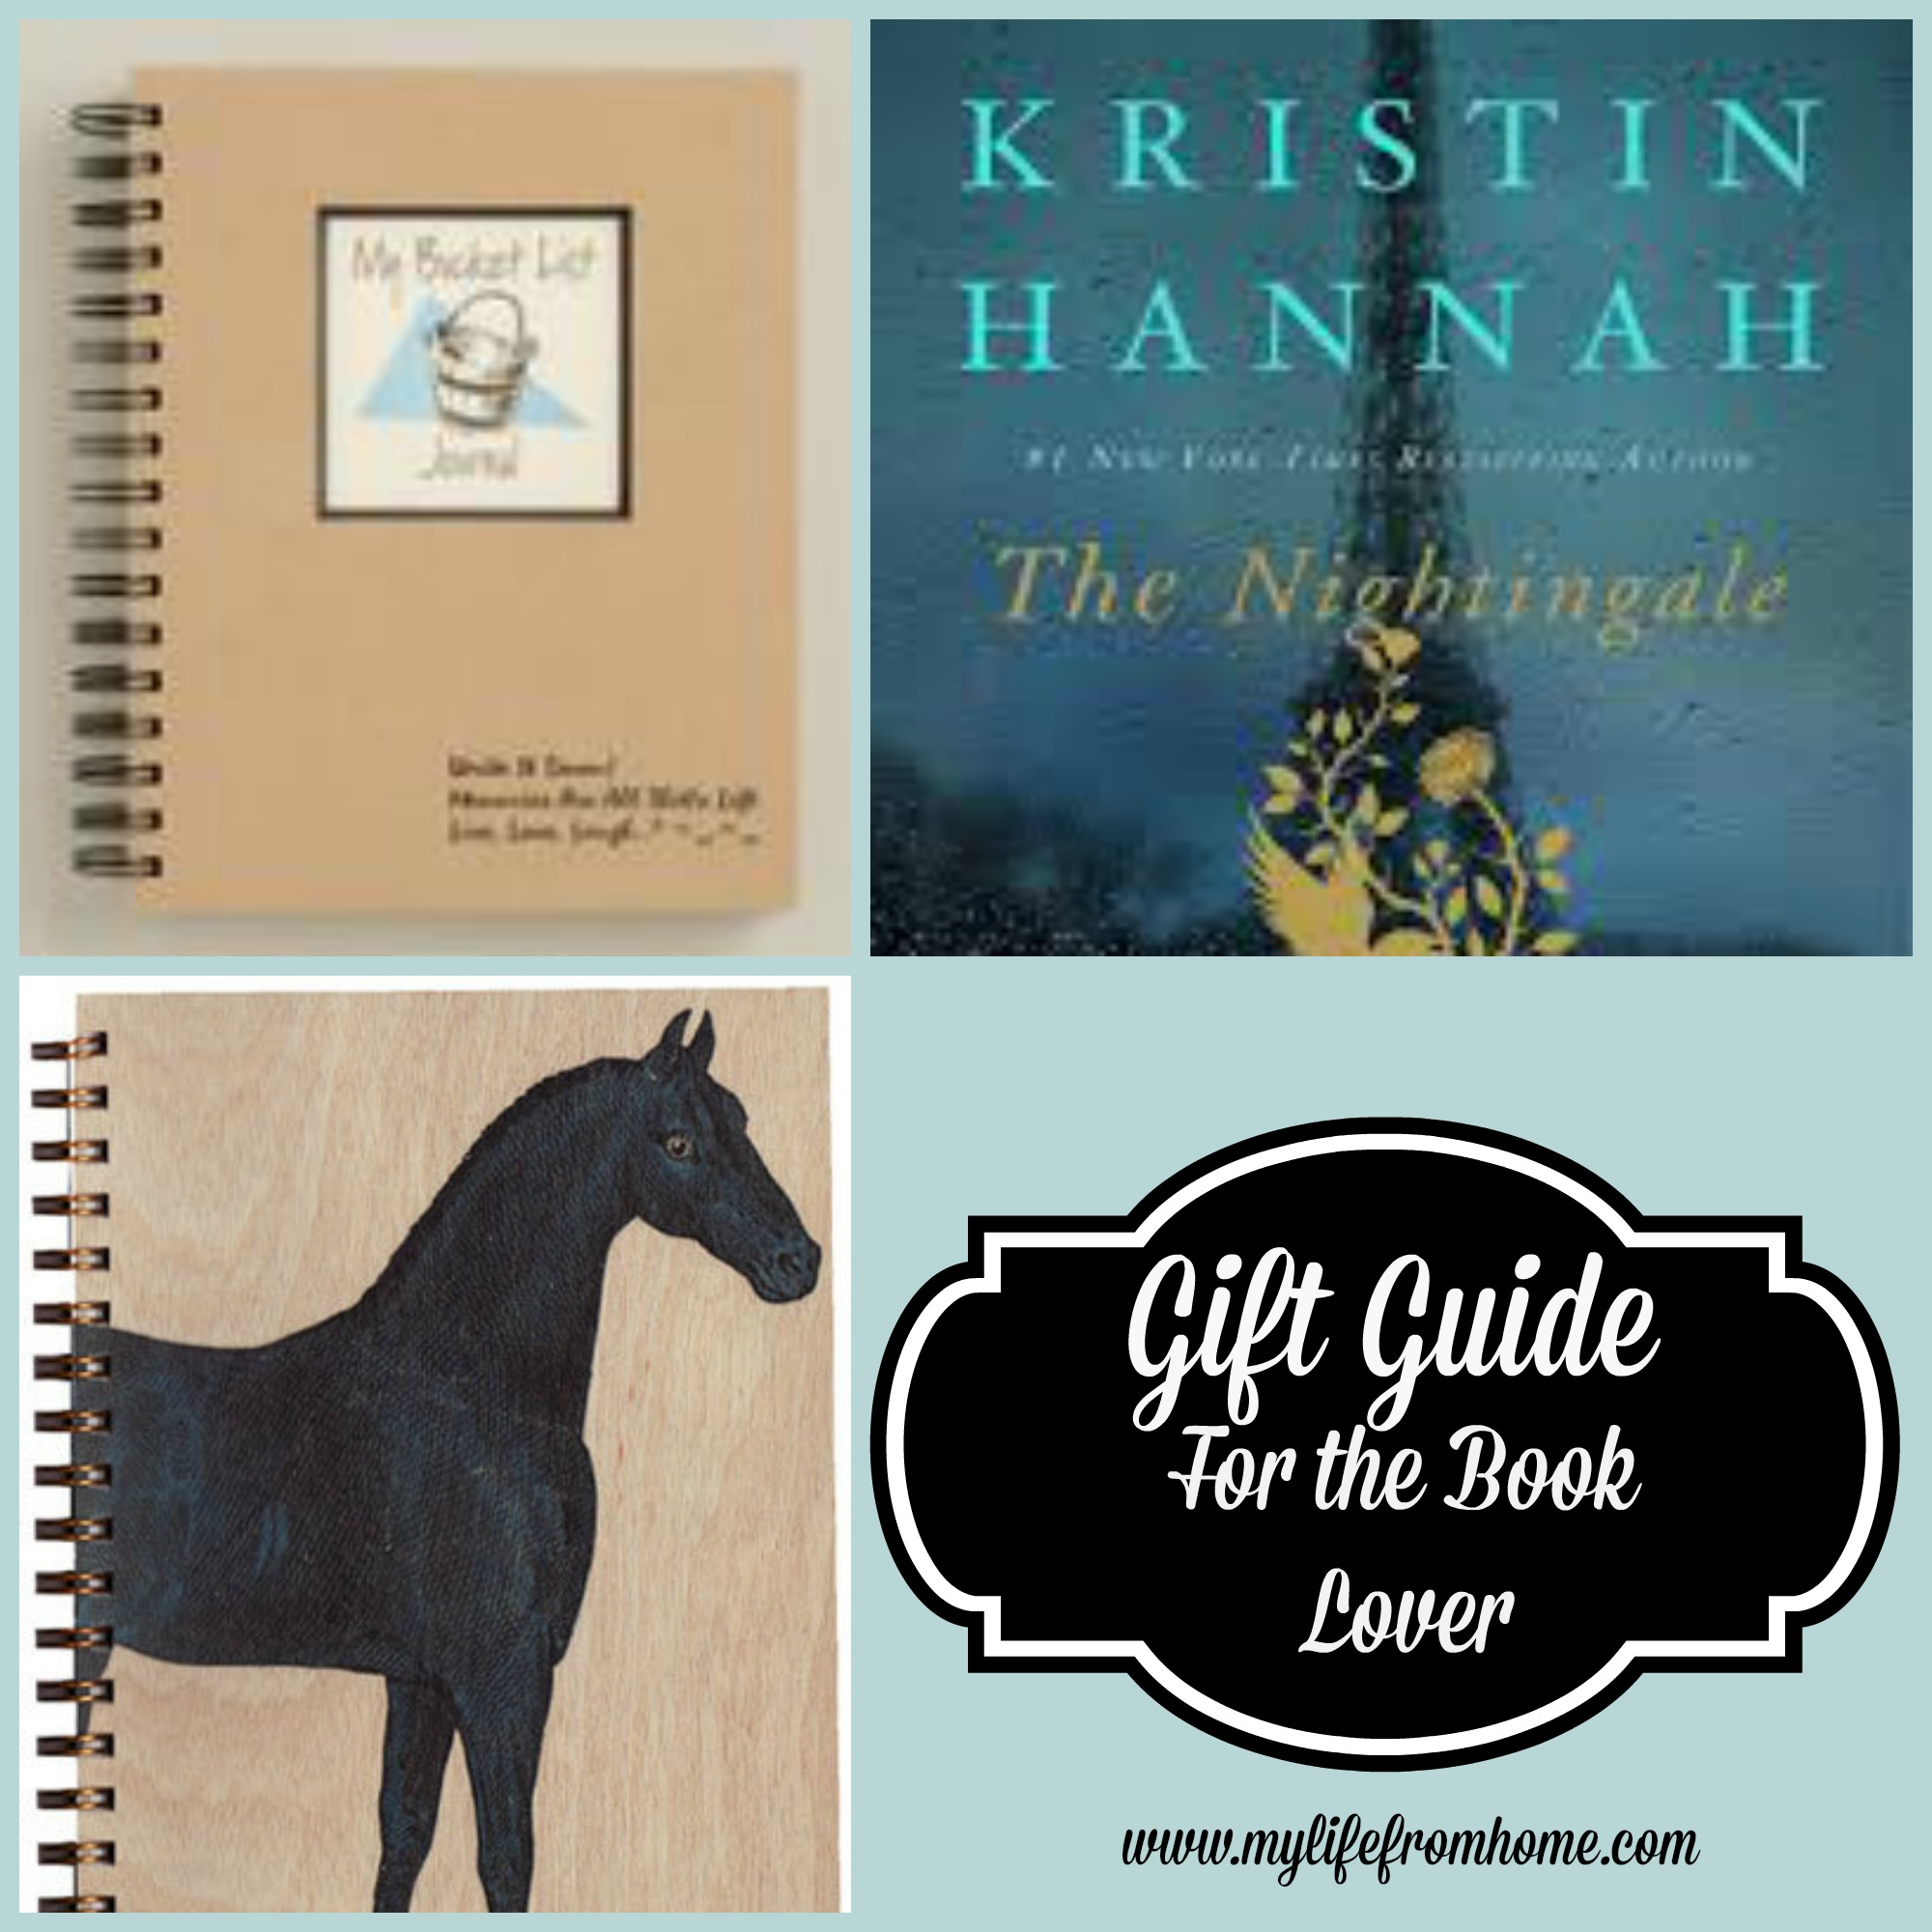 Gift Guide for the Book Lover by www.mylifefromhome.com